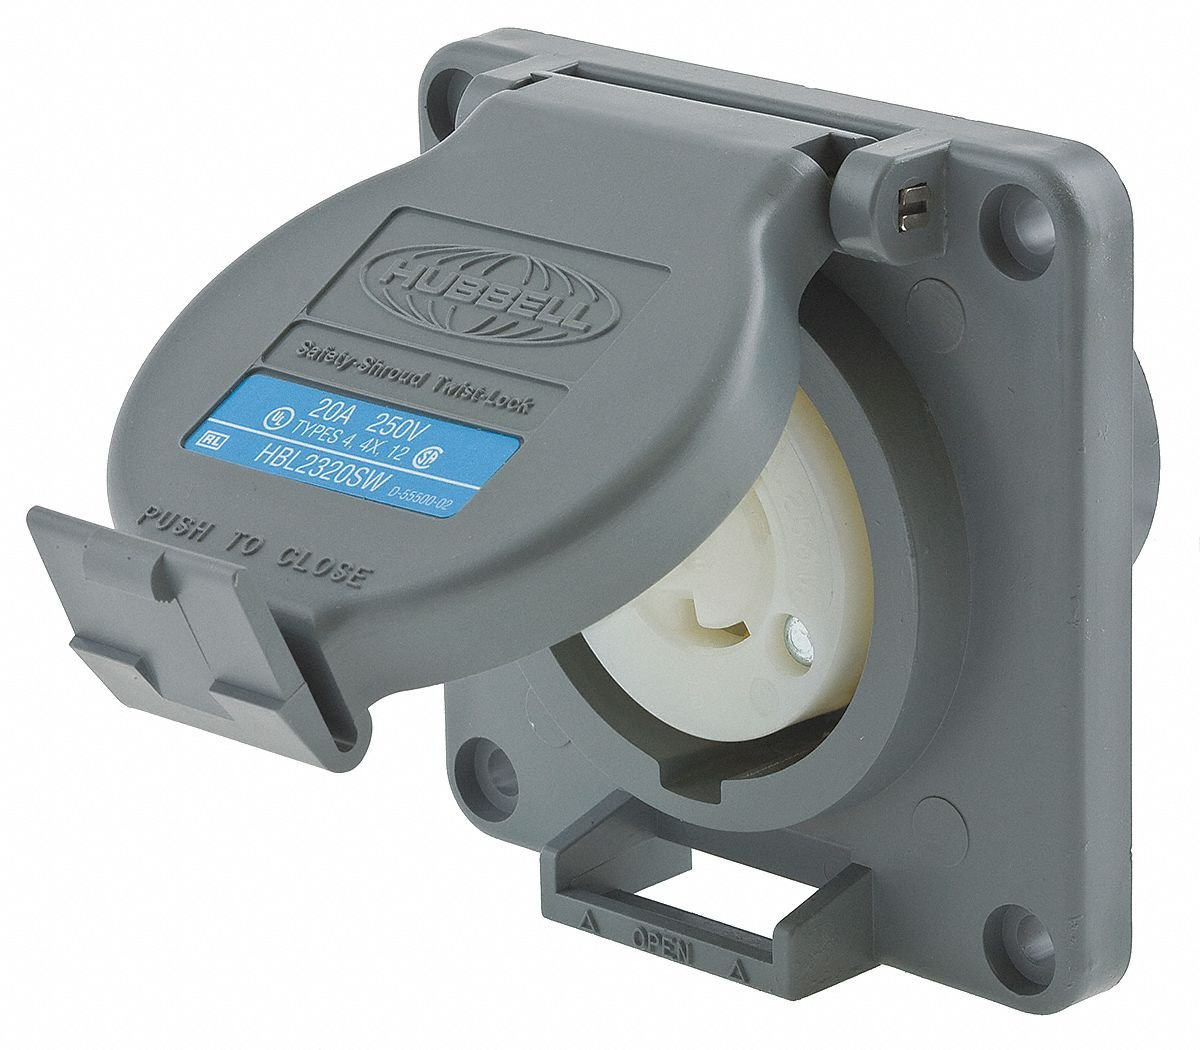 Hubbell Wiring Systems HBL2320SW Twist-Lock Watertight Safety Shroud Receptacle, 20 amp, 250VAC, 2-Pole, 3-Wire Grounding, L6-20R, Gray